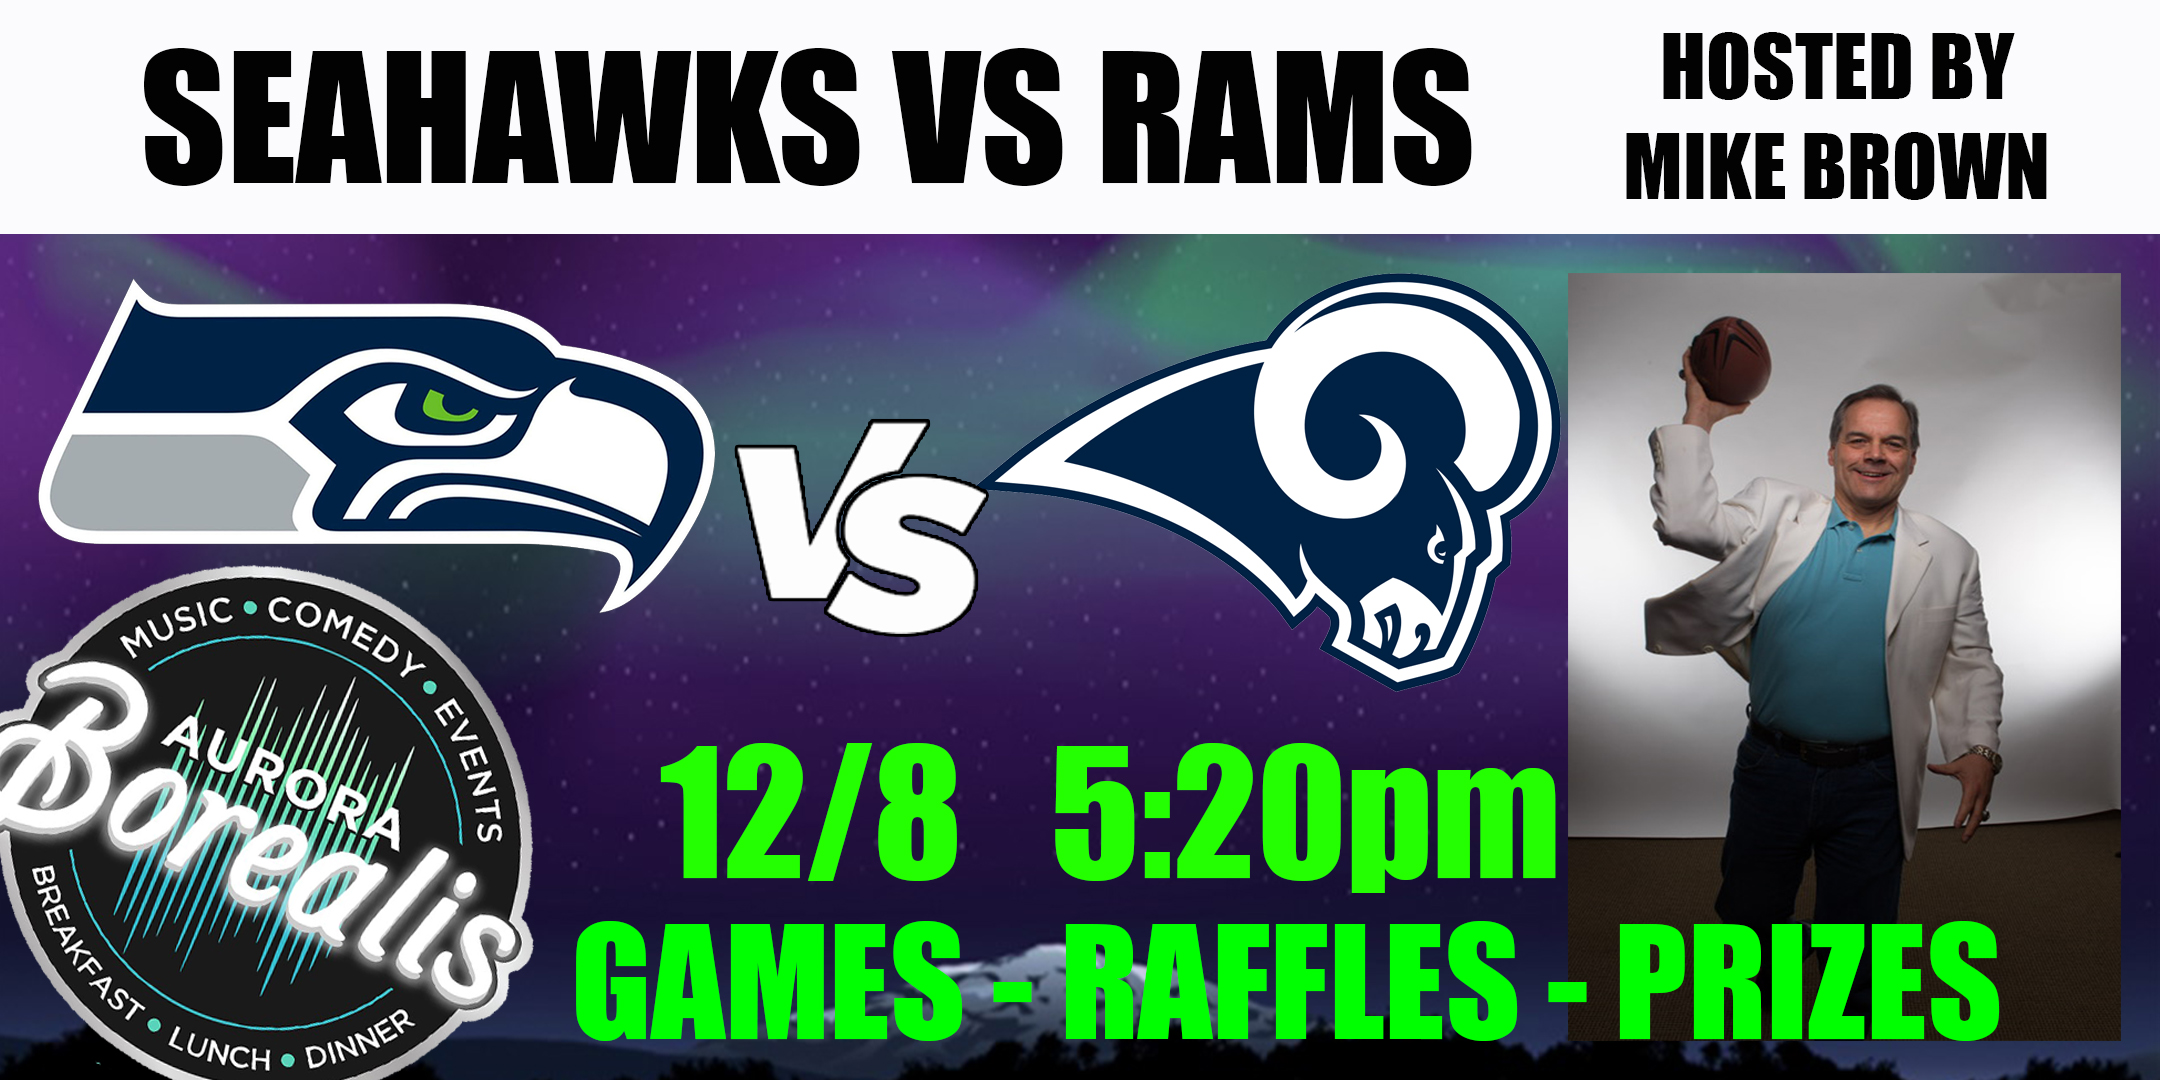 SEAHAWKS v RAMS hosted by Mike Brown